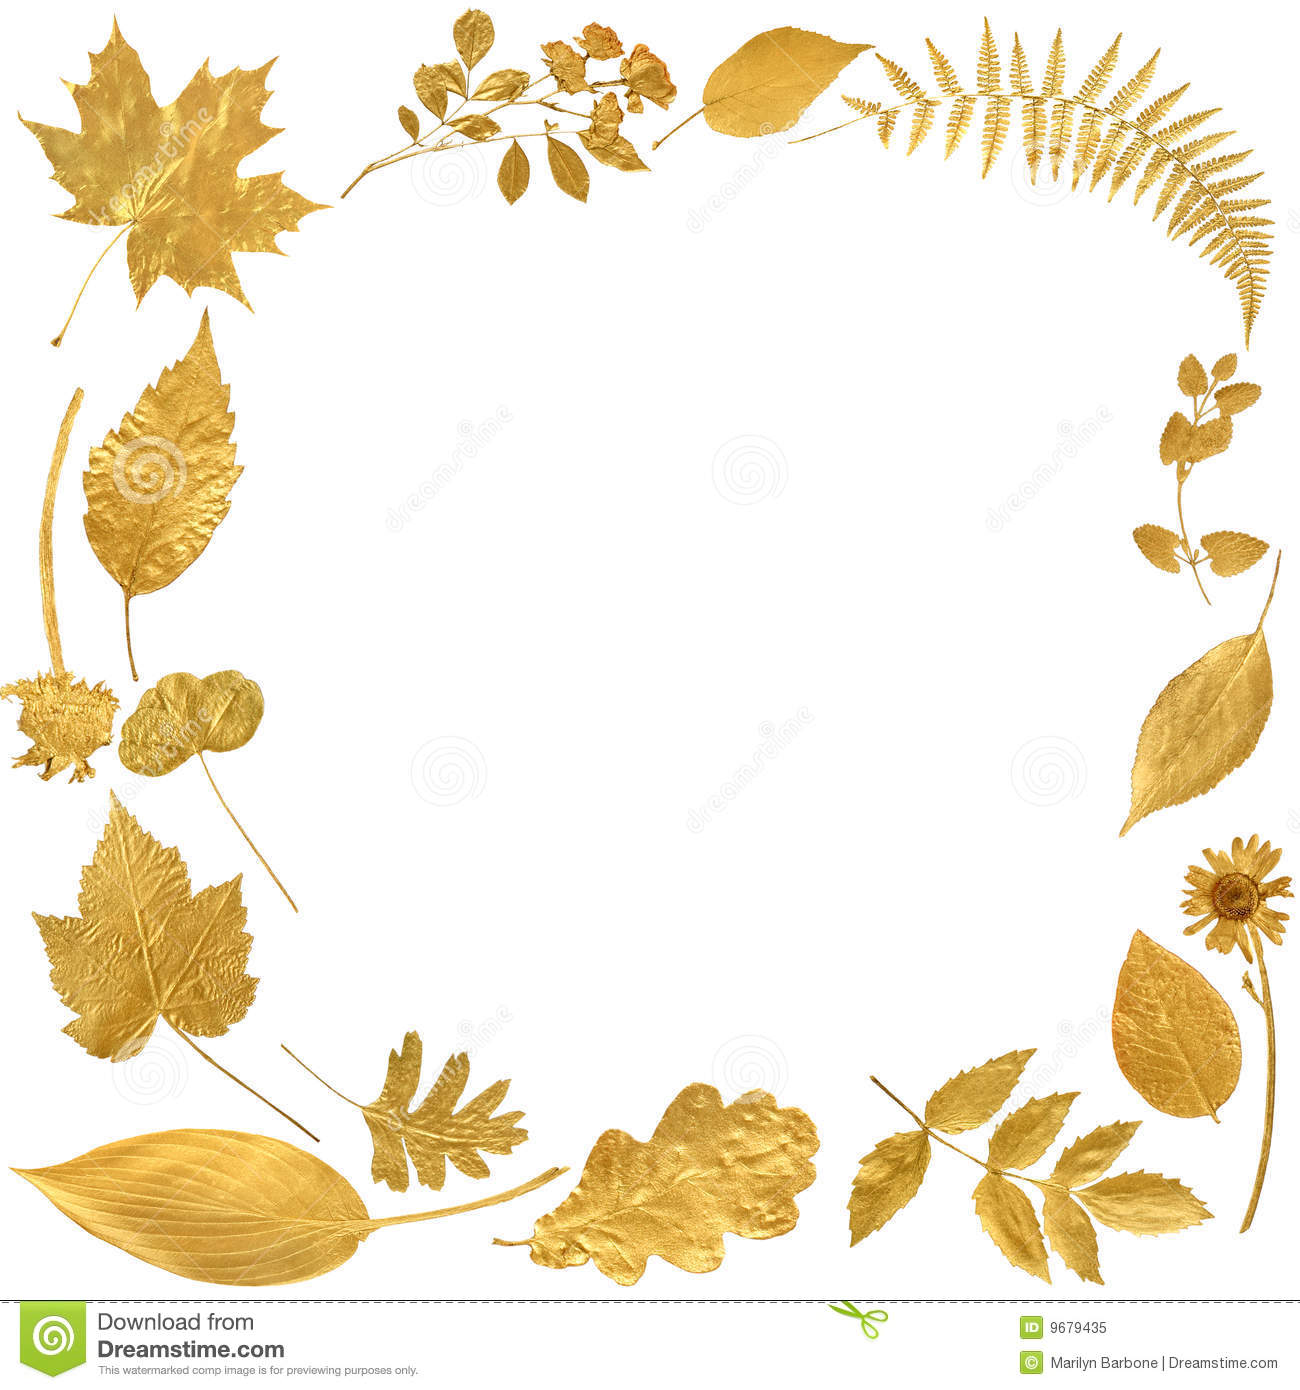 Festive Golden Leaf Border Royalty Free Stock Image.